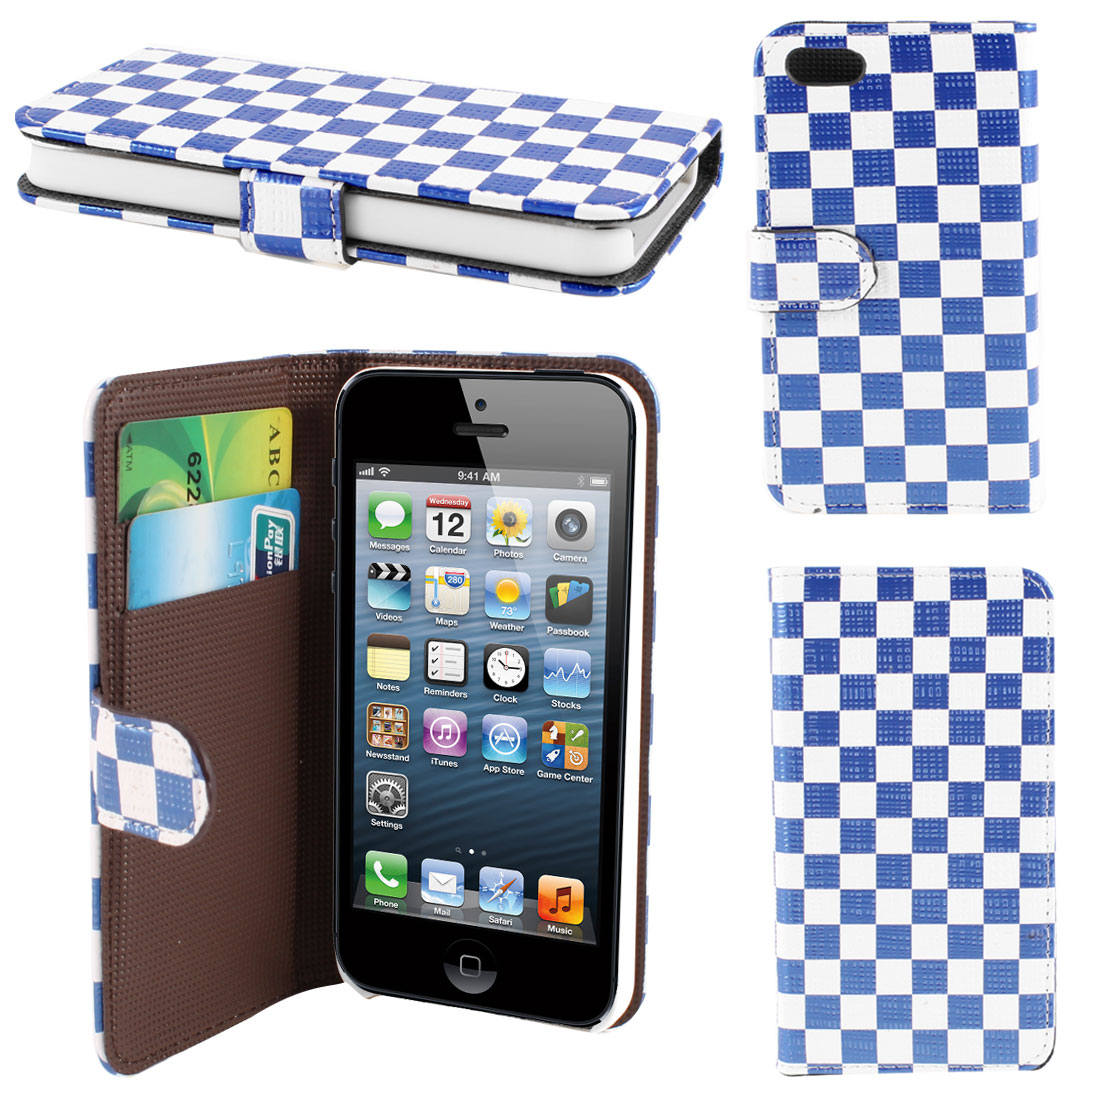 White Blue Check Print PU Leather Card Holder Flip Case Cover for iPhone 5 5G 5th